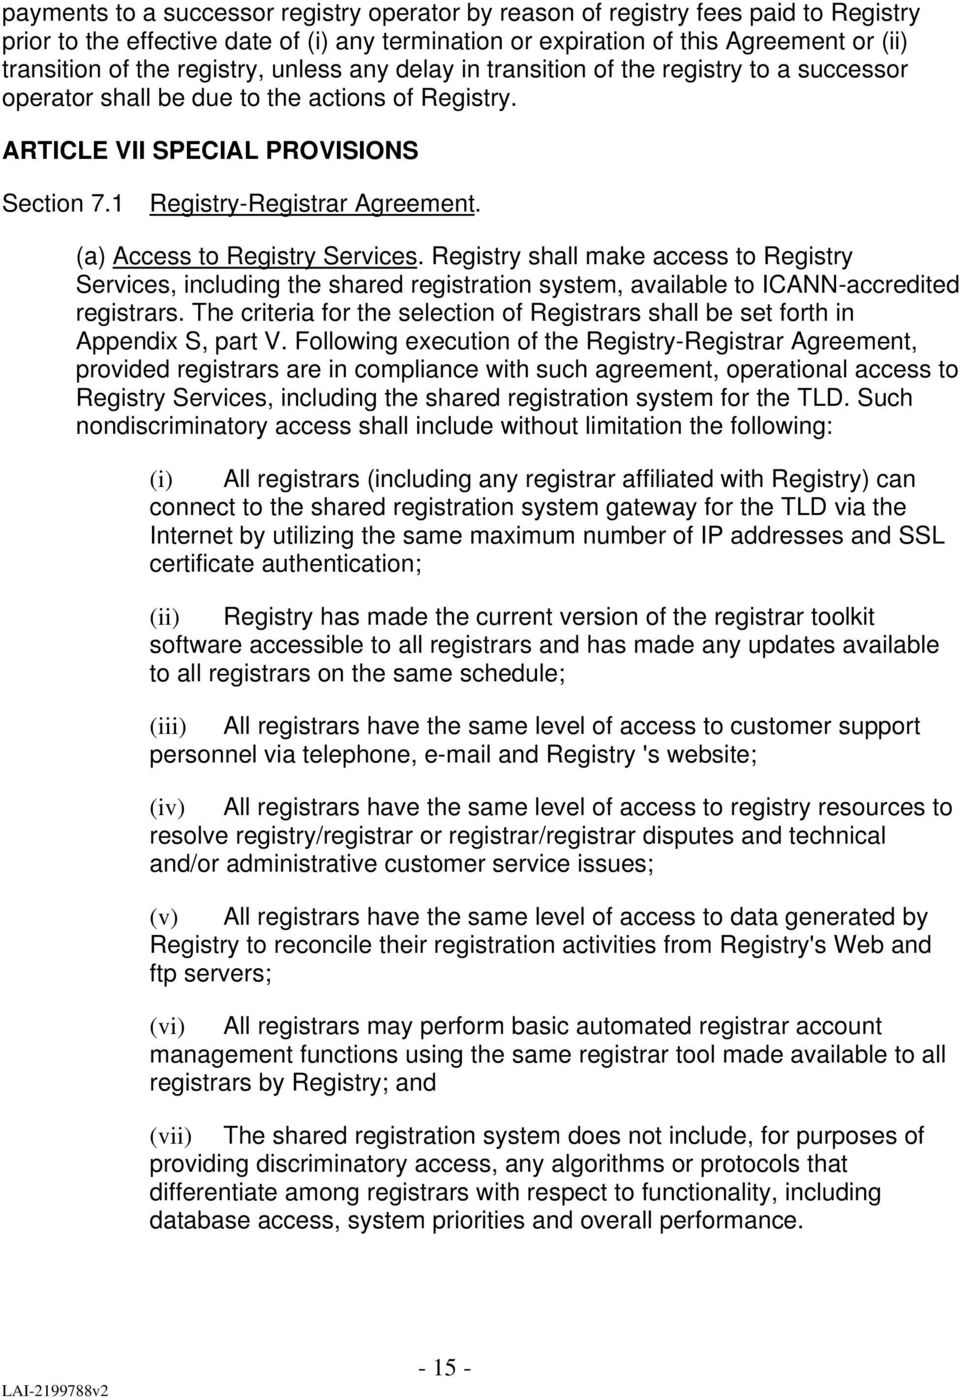 (a) Access to Registry Services. Registry shall make access to Registry Services, including the shared registration system, available to ICANN-accredited registrars.